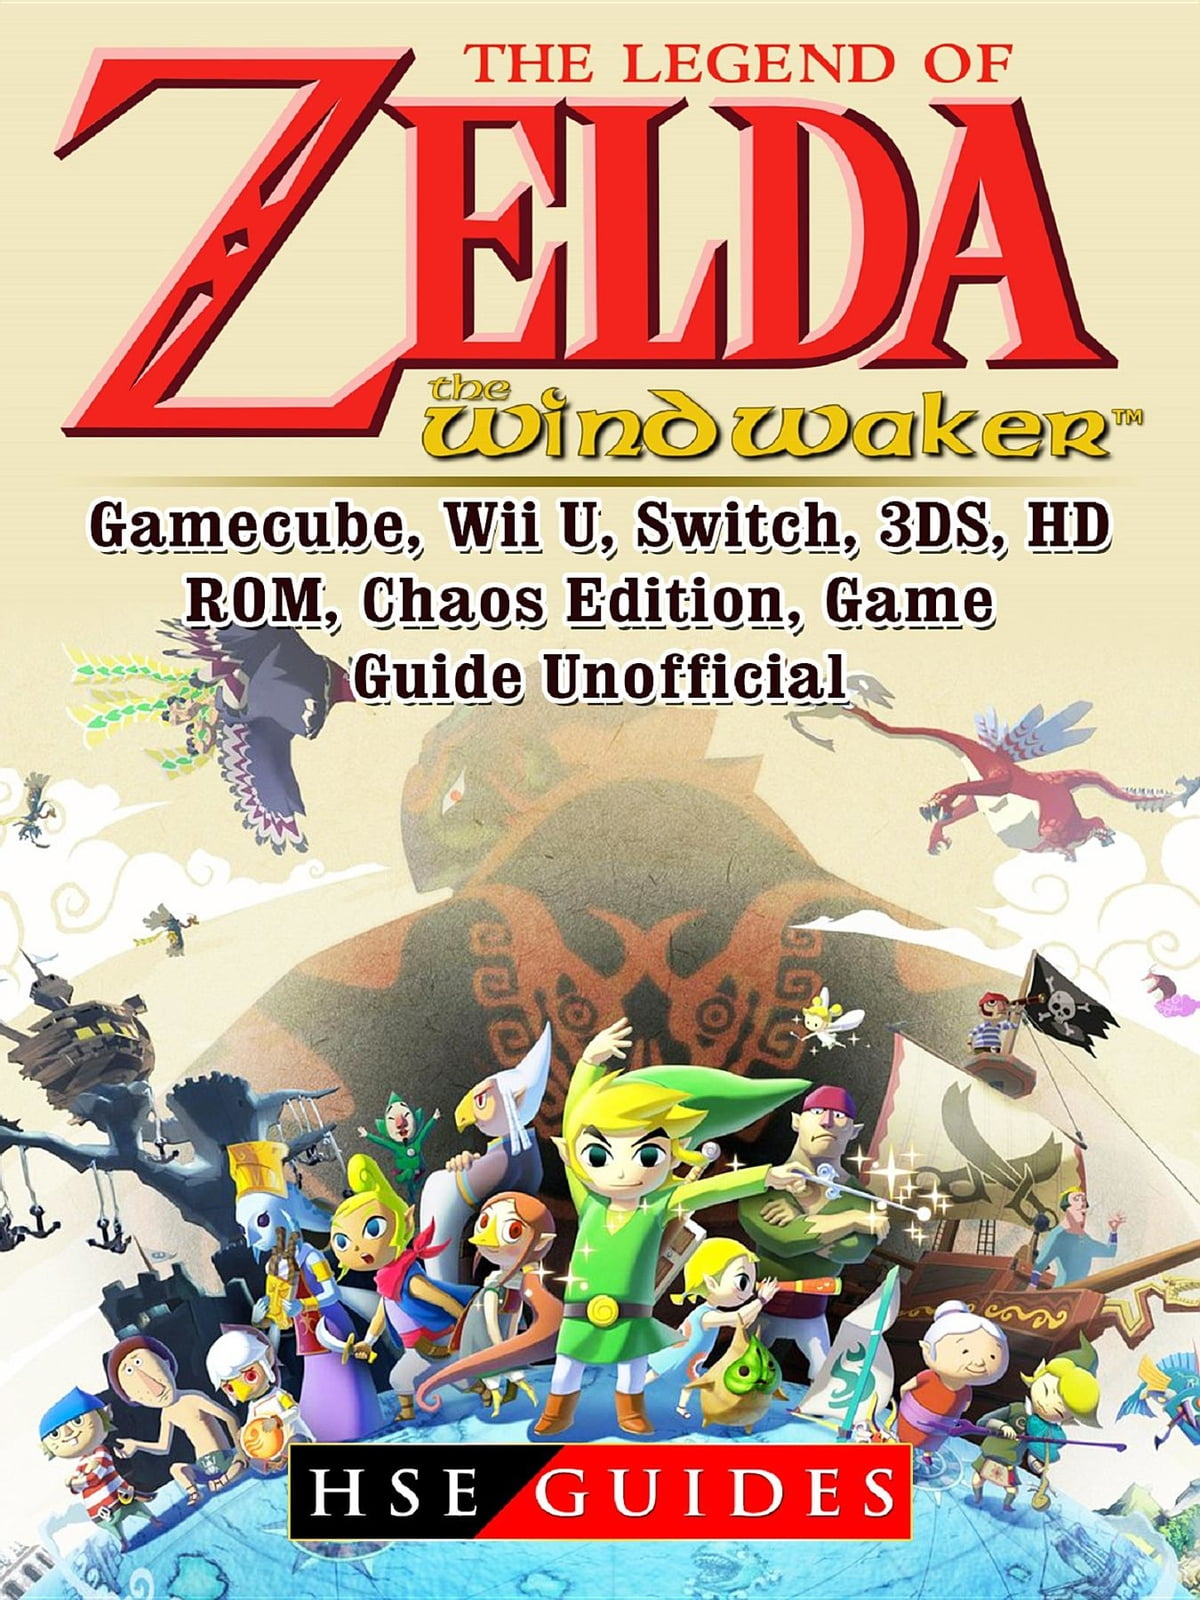 The Legend of Zelda The Wind Waker, Gamecube, Wii U, Switch, 3DS, HD, ROM,  Chaos Edition, Game Guide Unofficial ebook by HSE Guides - Rakuten Kobo